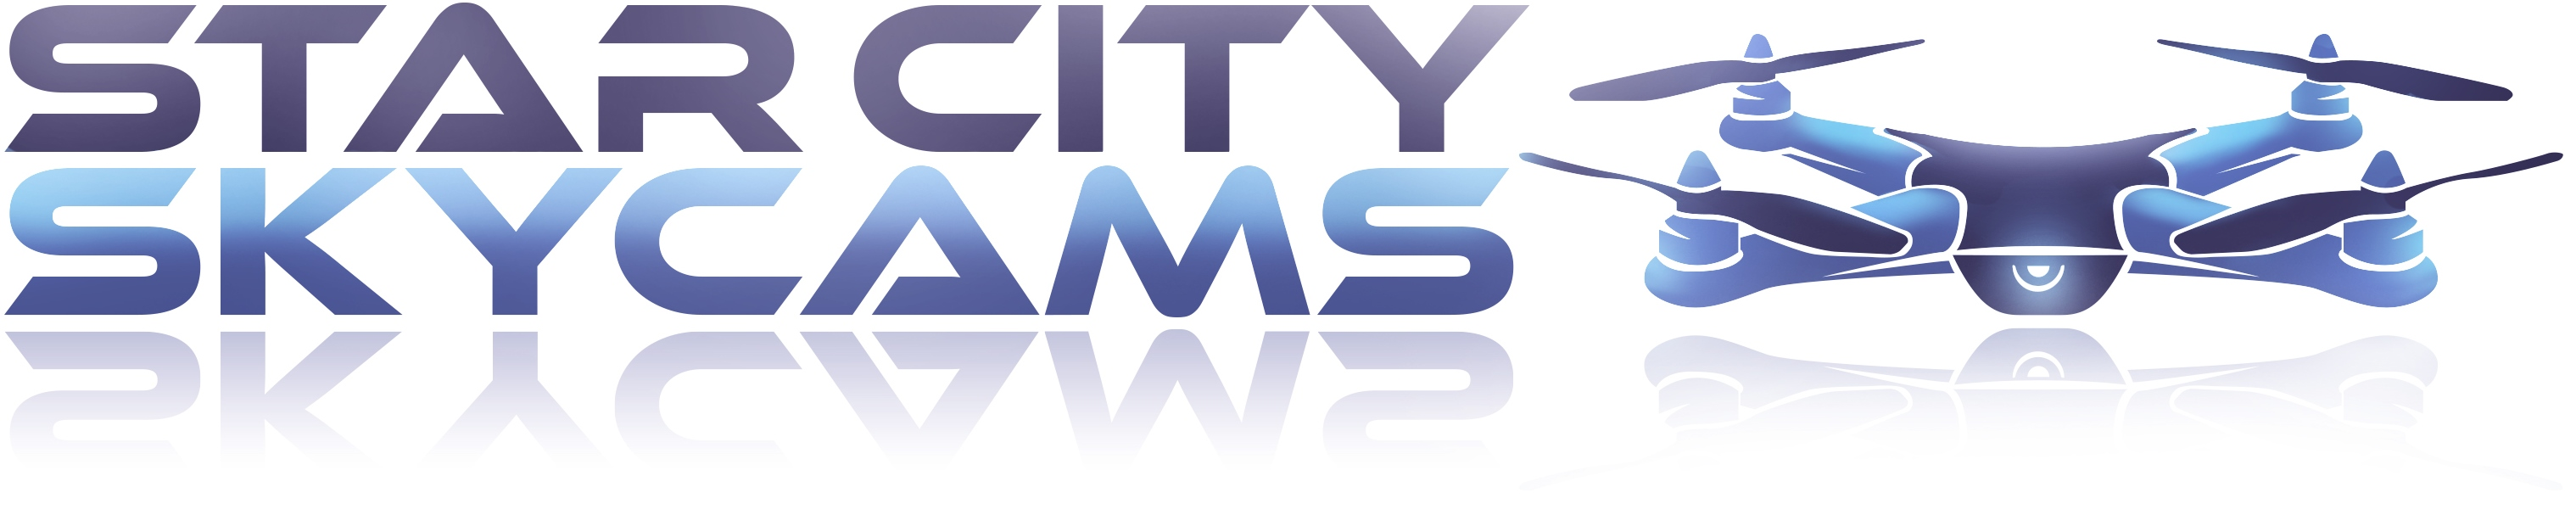 Star City SkyCams - Website